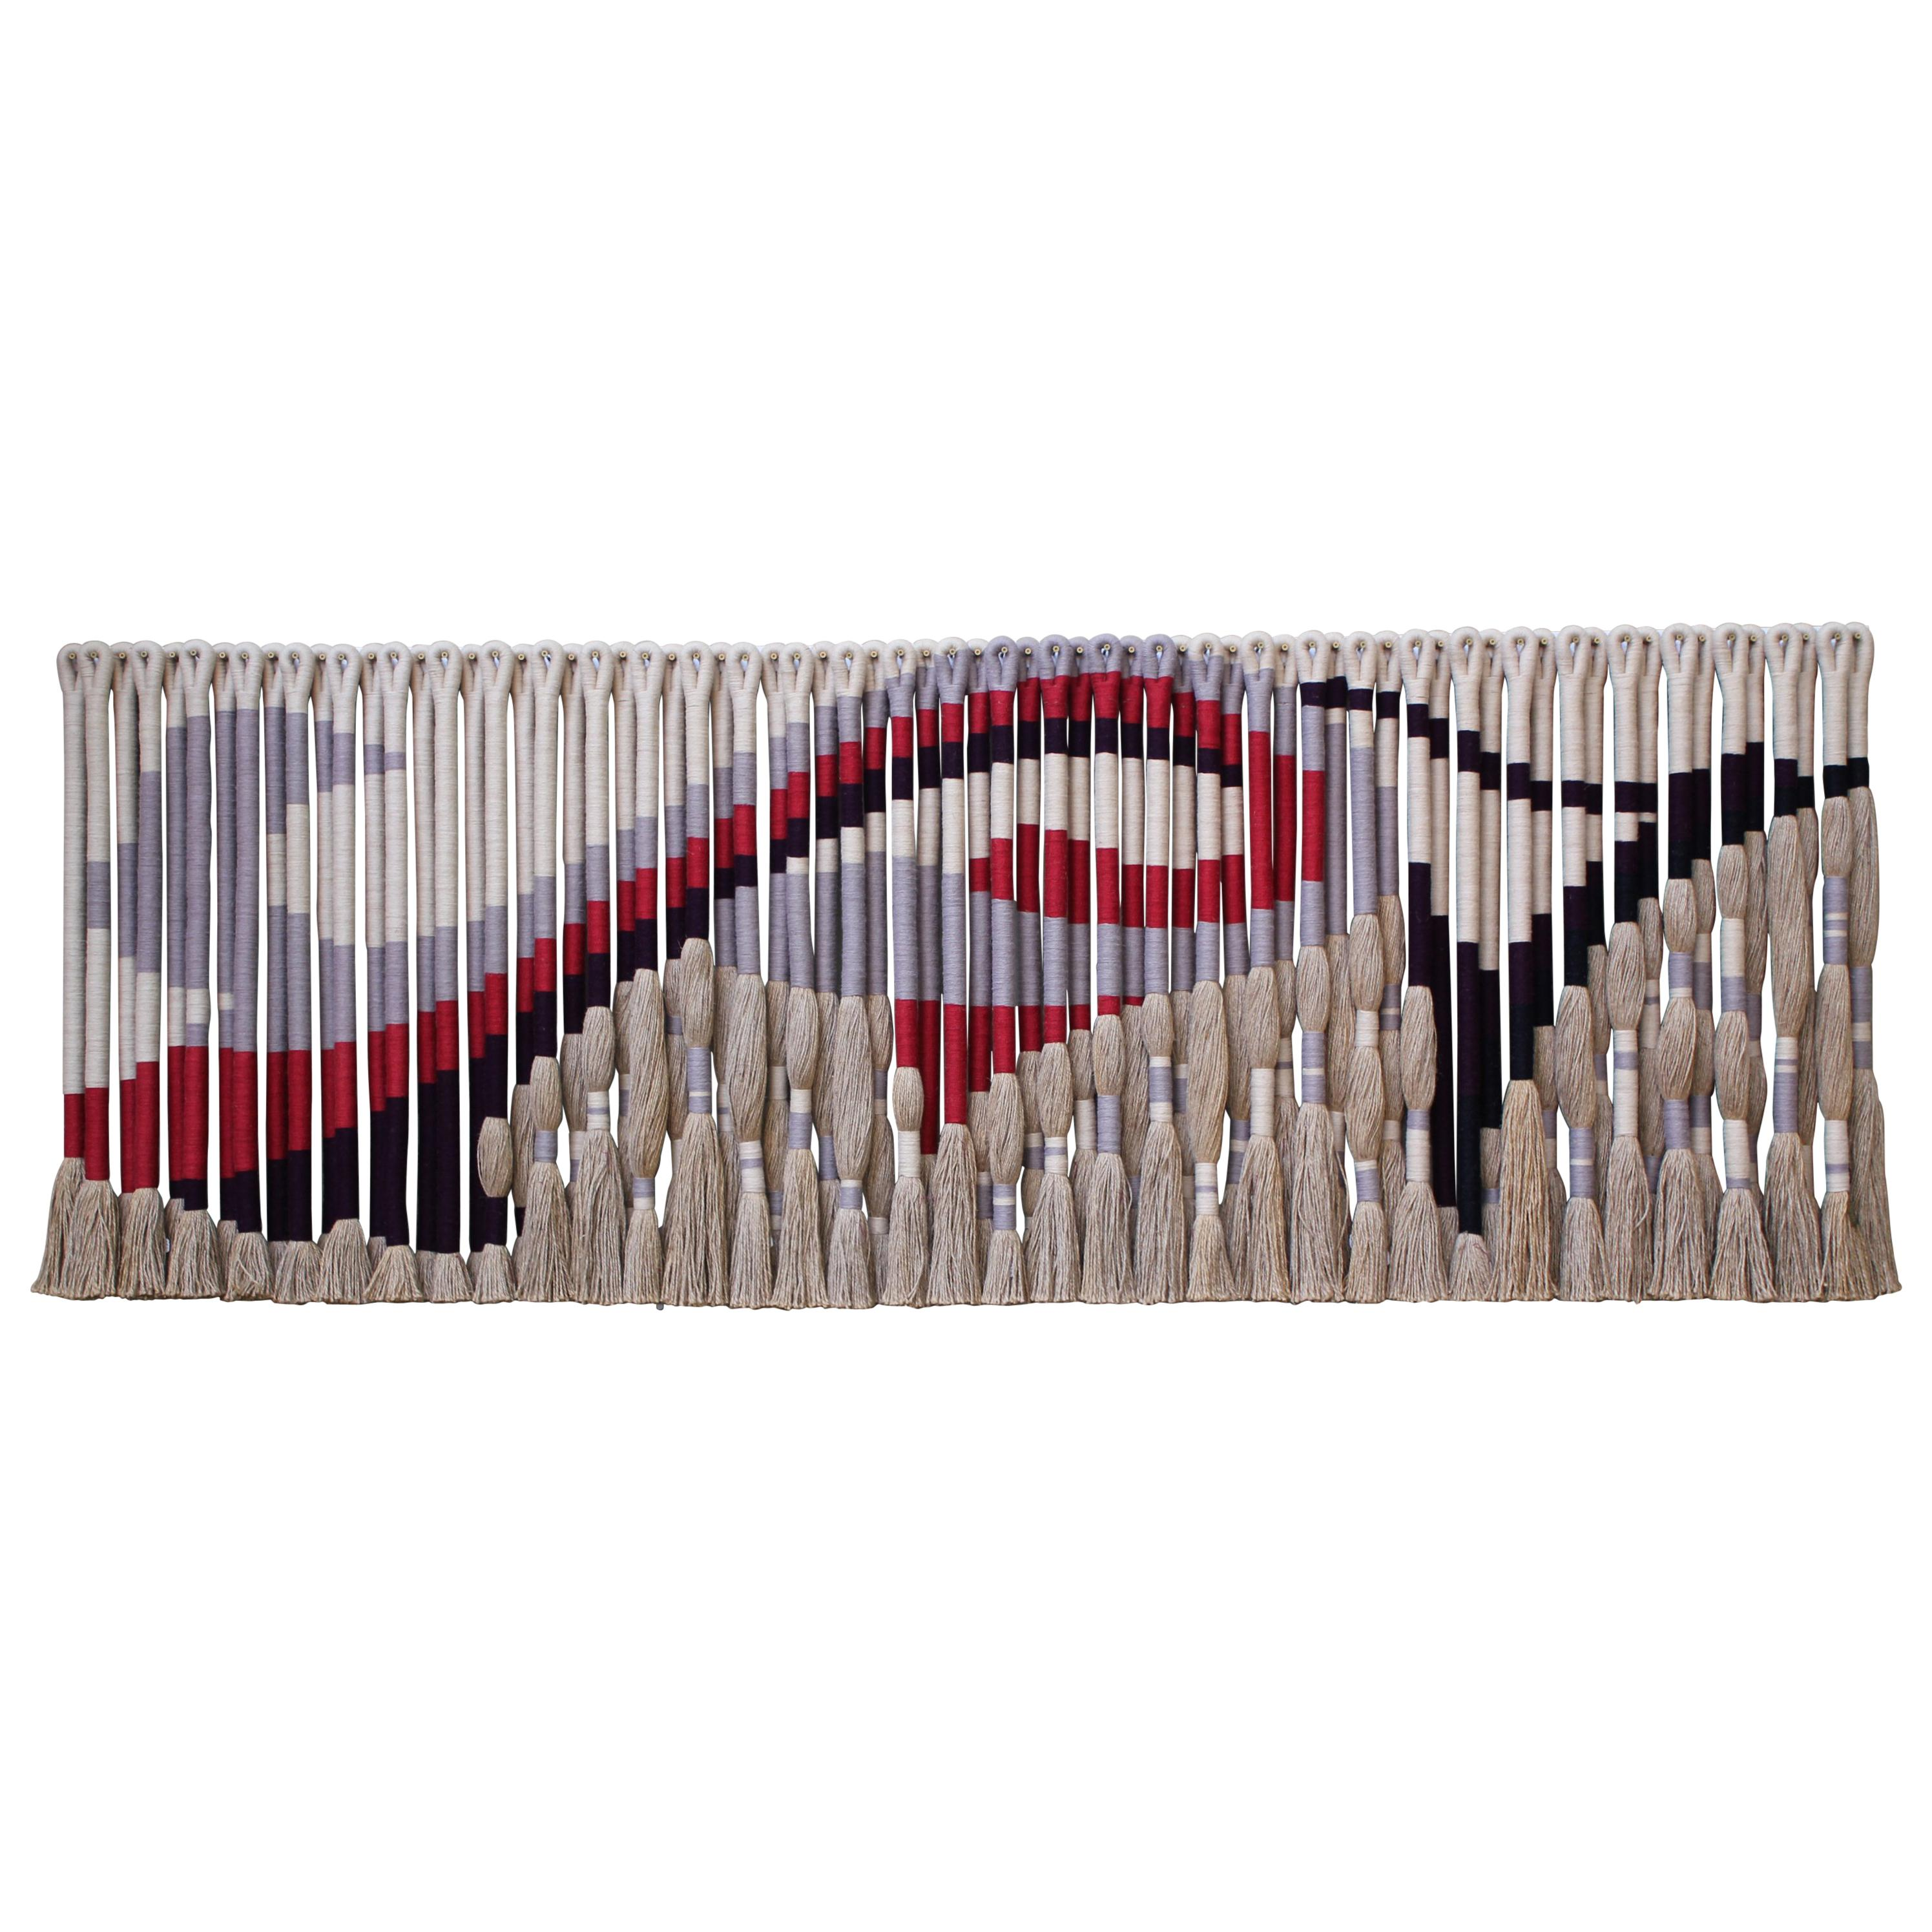 Privately Commissioned Jane Knight Fiber Art Installation 'Red and Gray Wave'